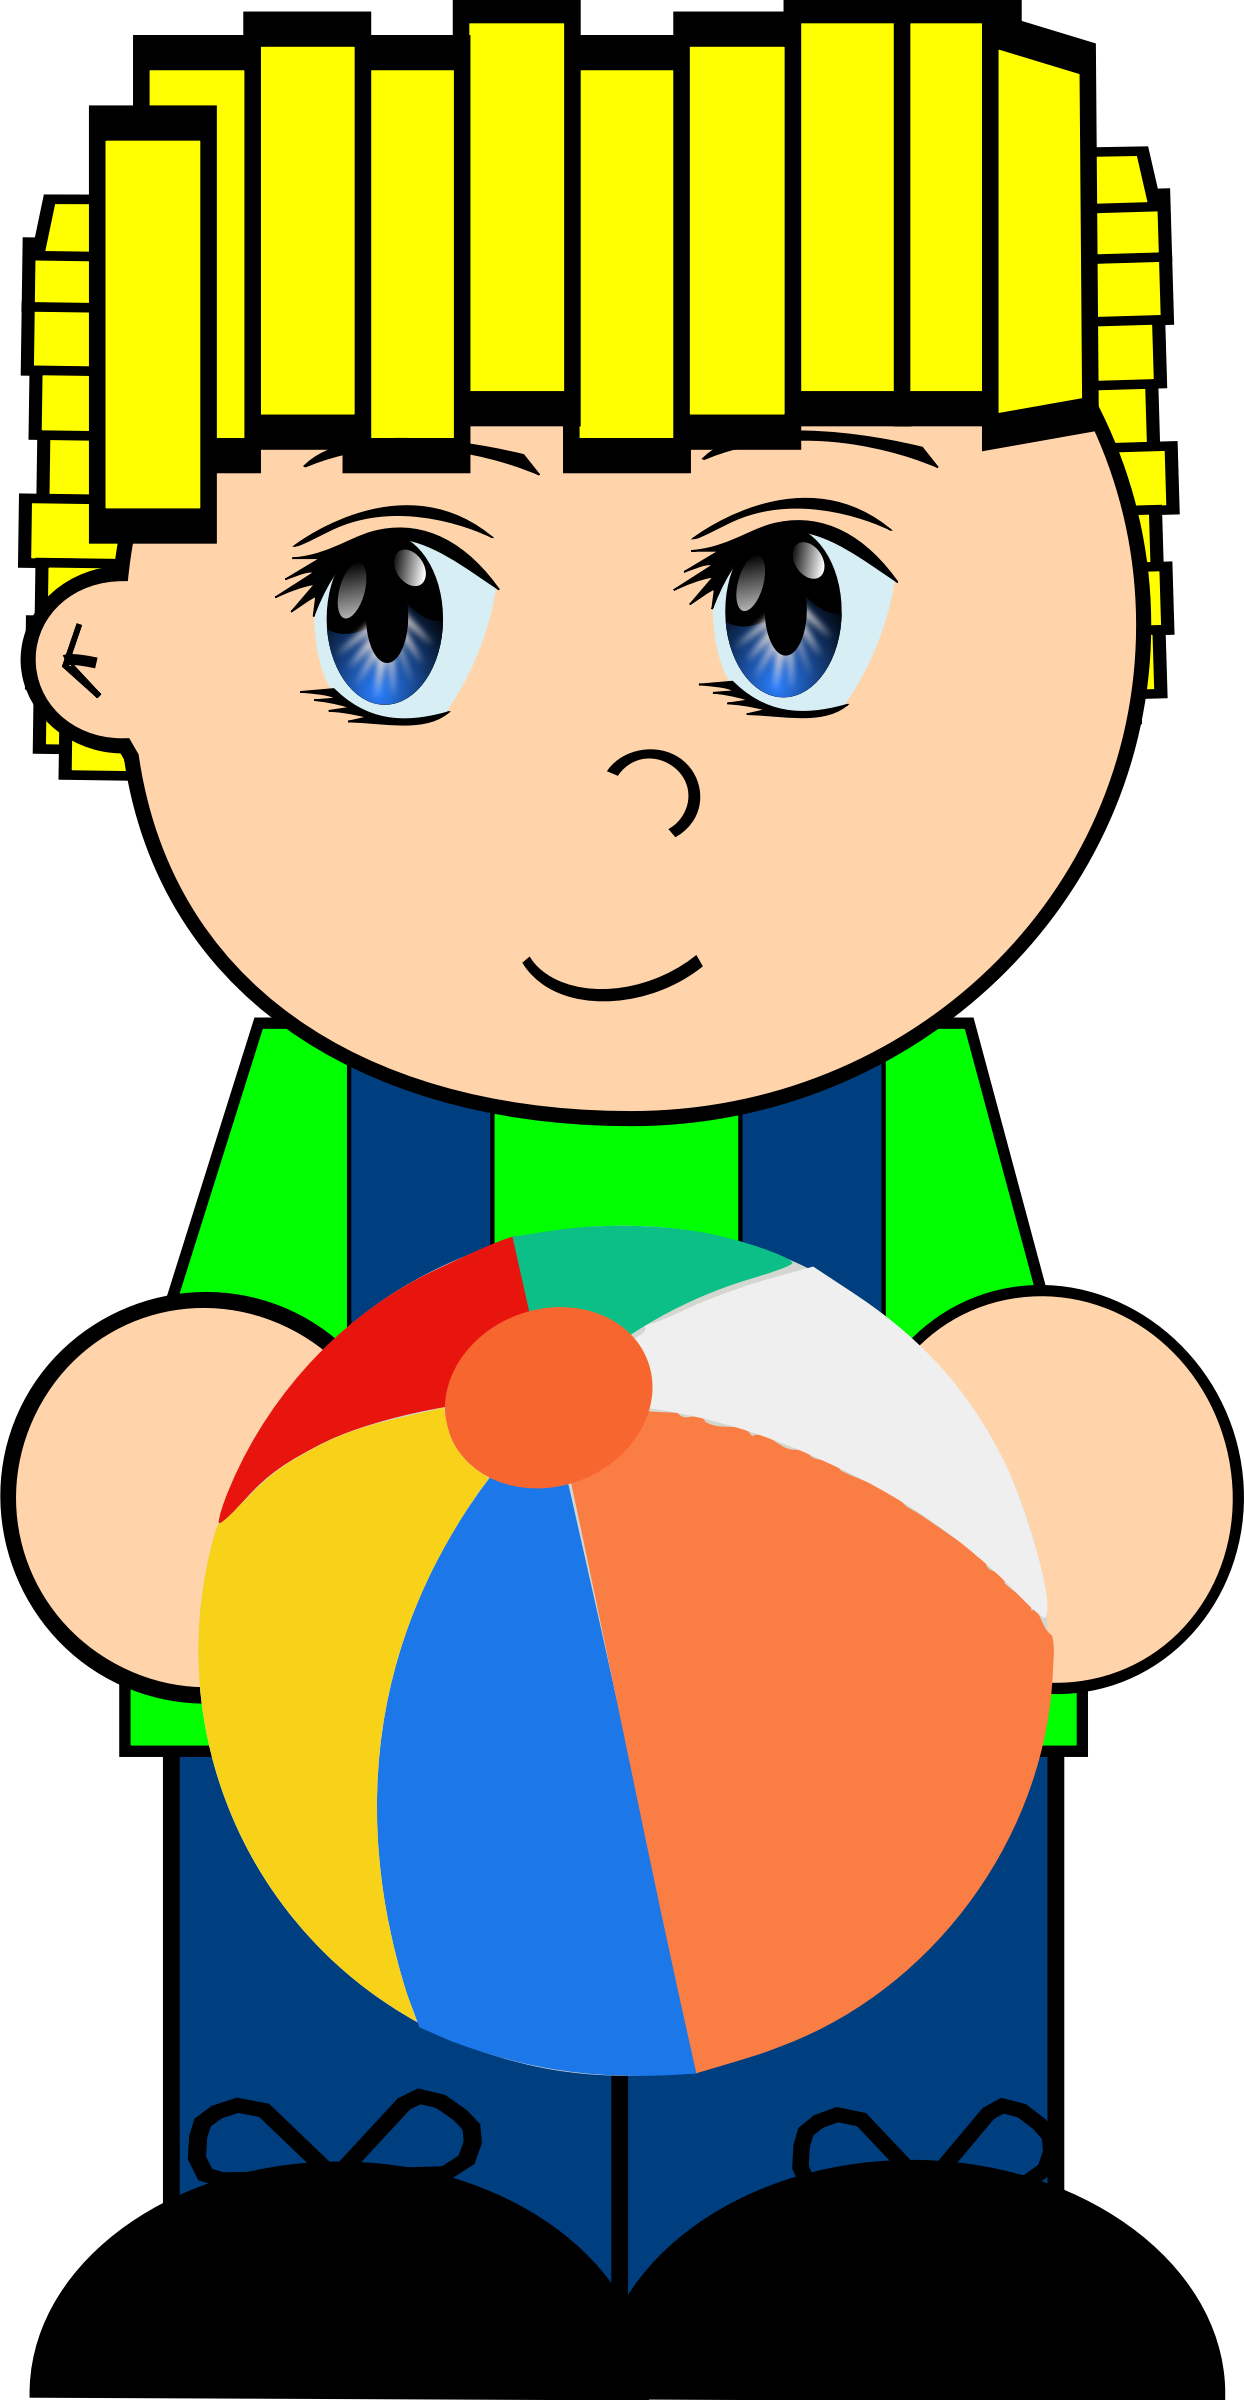 Ball clipart cartoon. Boy with big image